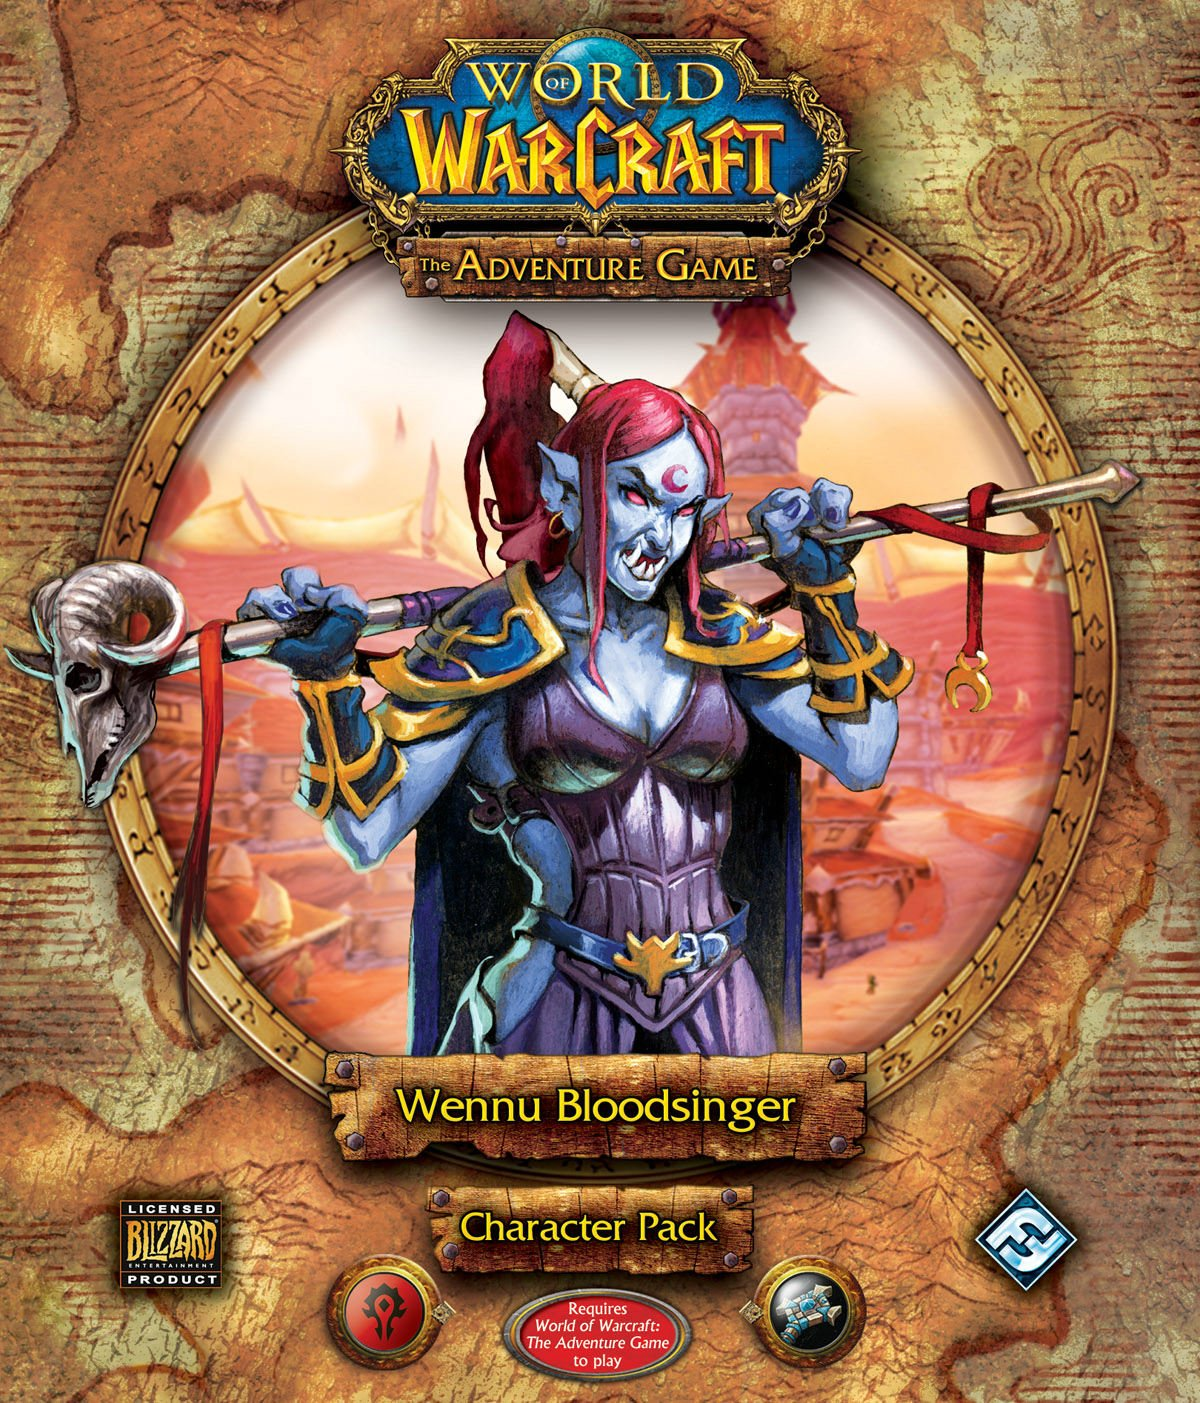 World of Warcraft: The Adventure Game: Wennu Bloodsinger Character Pack With Cards and Tokens, Character Miniature: Amazon.es: Fantasy Flight Games: Libros en idiomas extranjeros